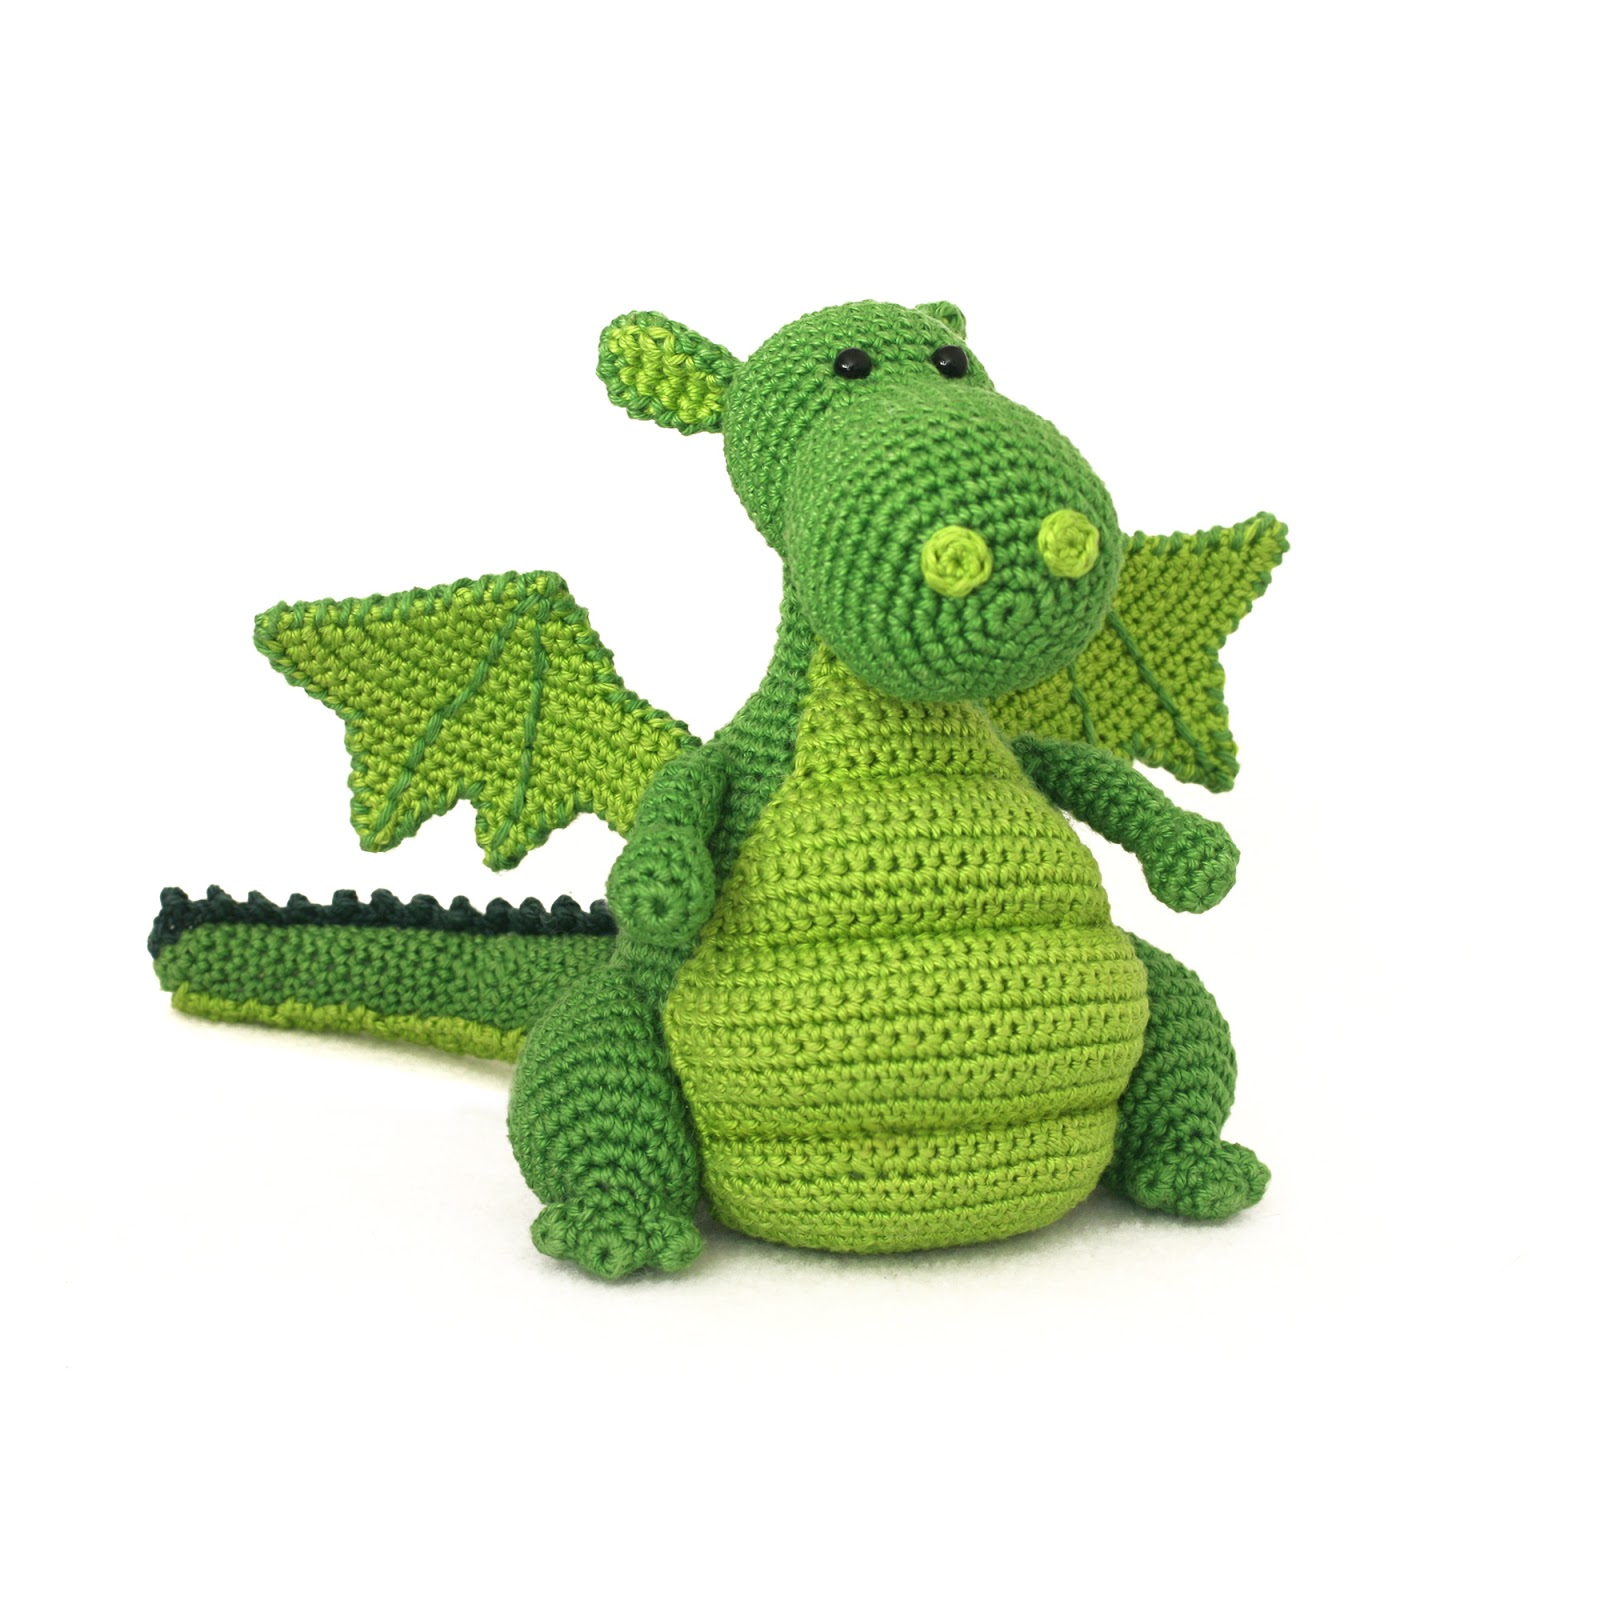 Crochet Patterns Dragon : Toy Patterns by DIY Fluffies : Dragon Amigurumi Pattern